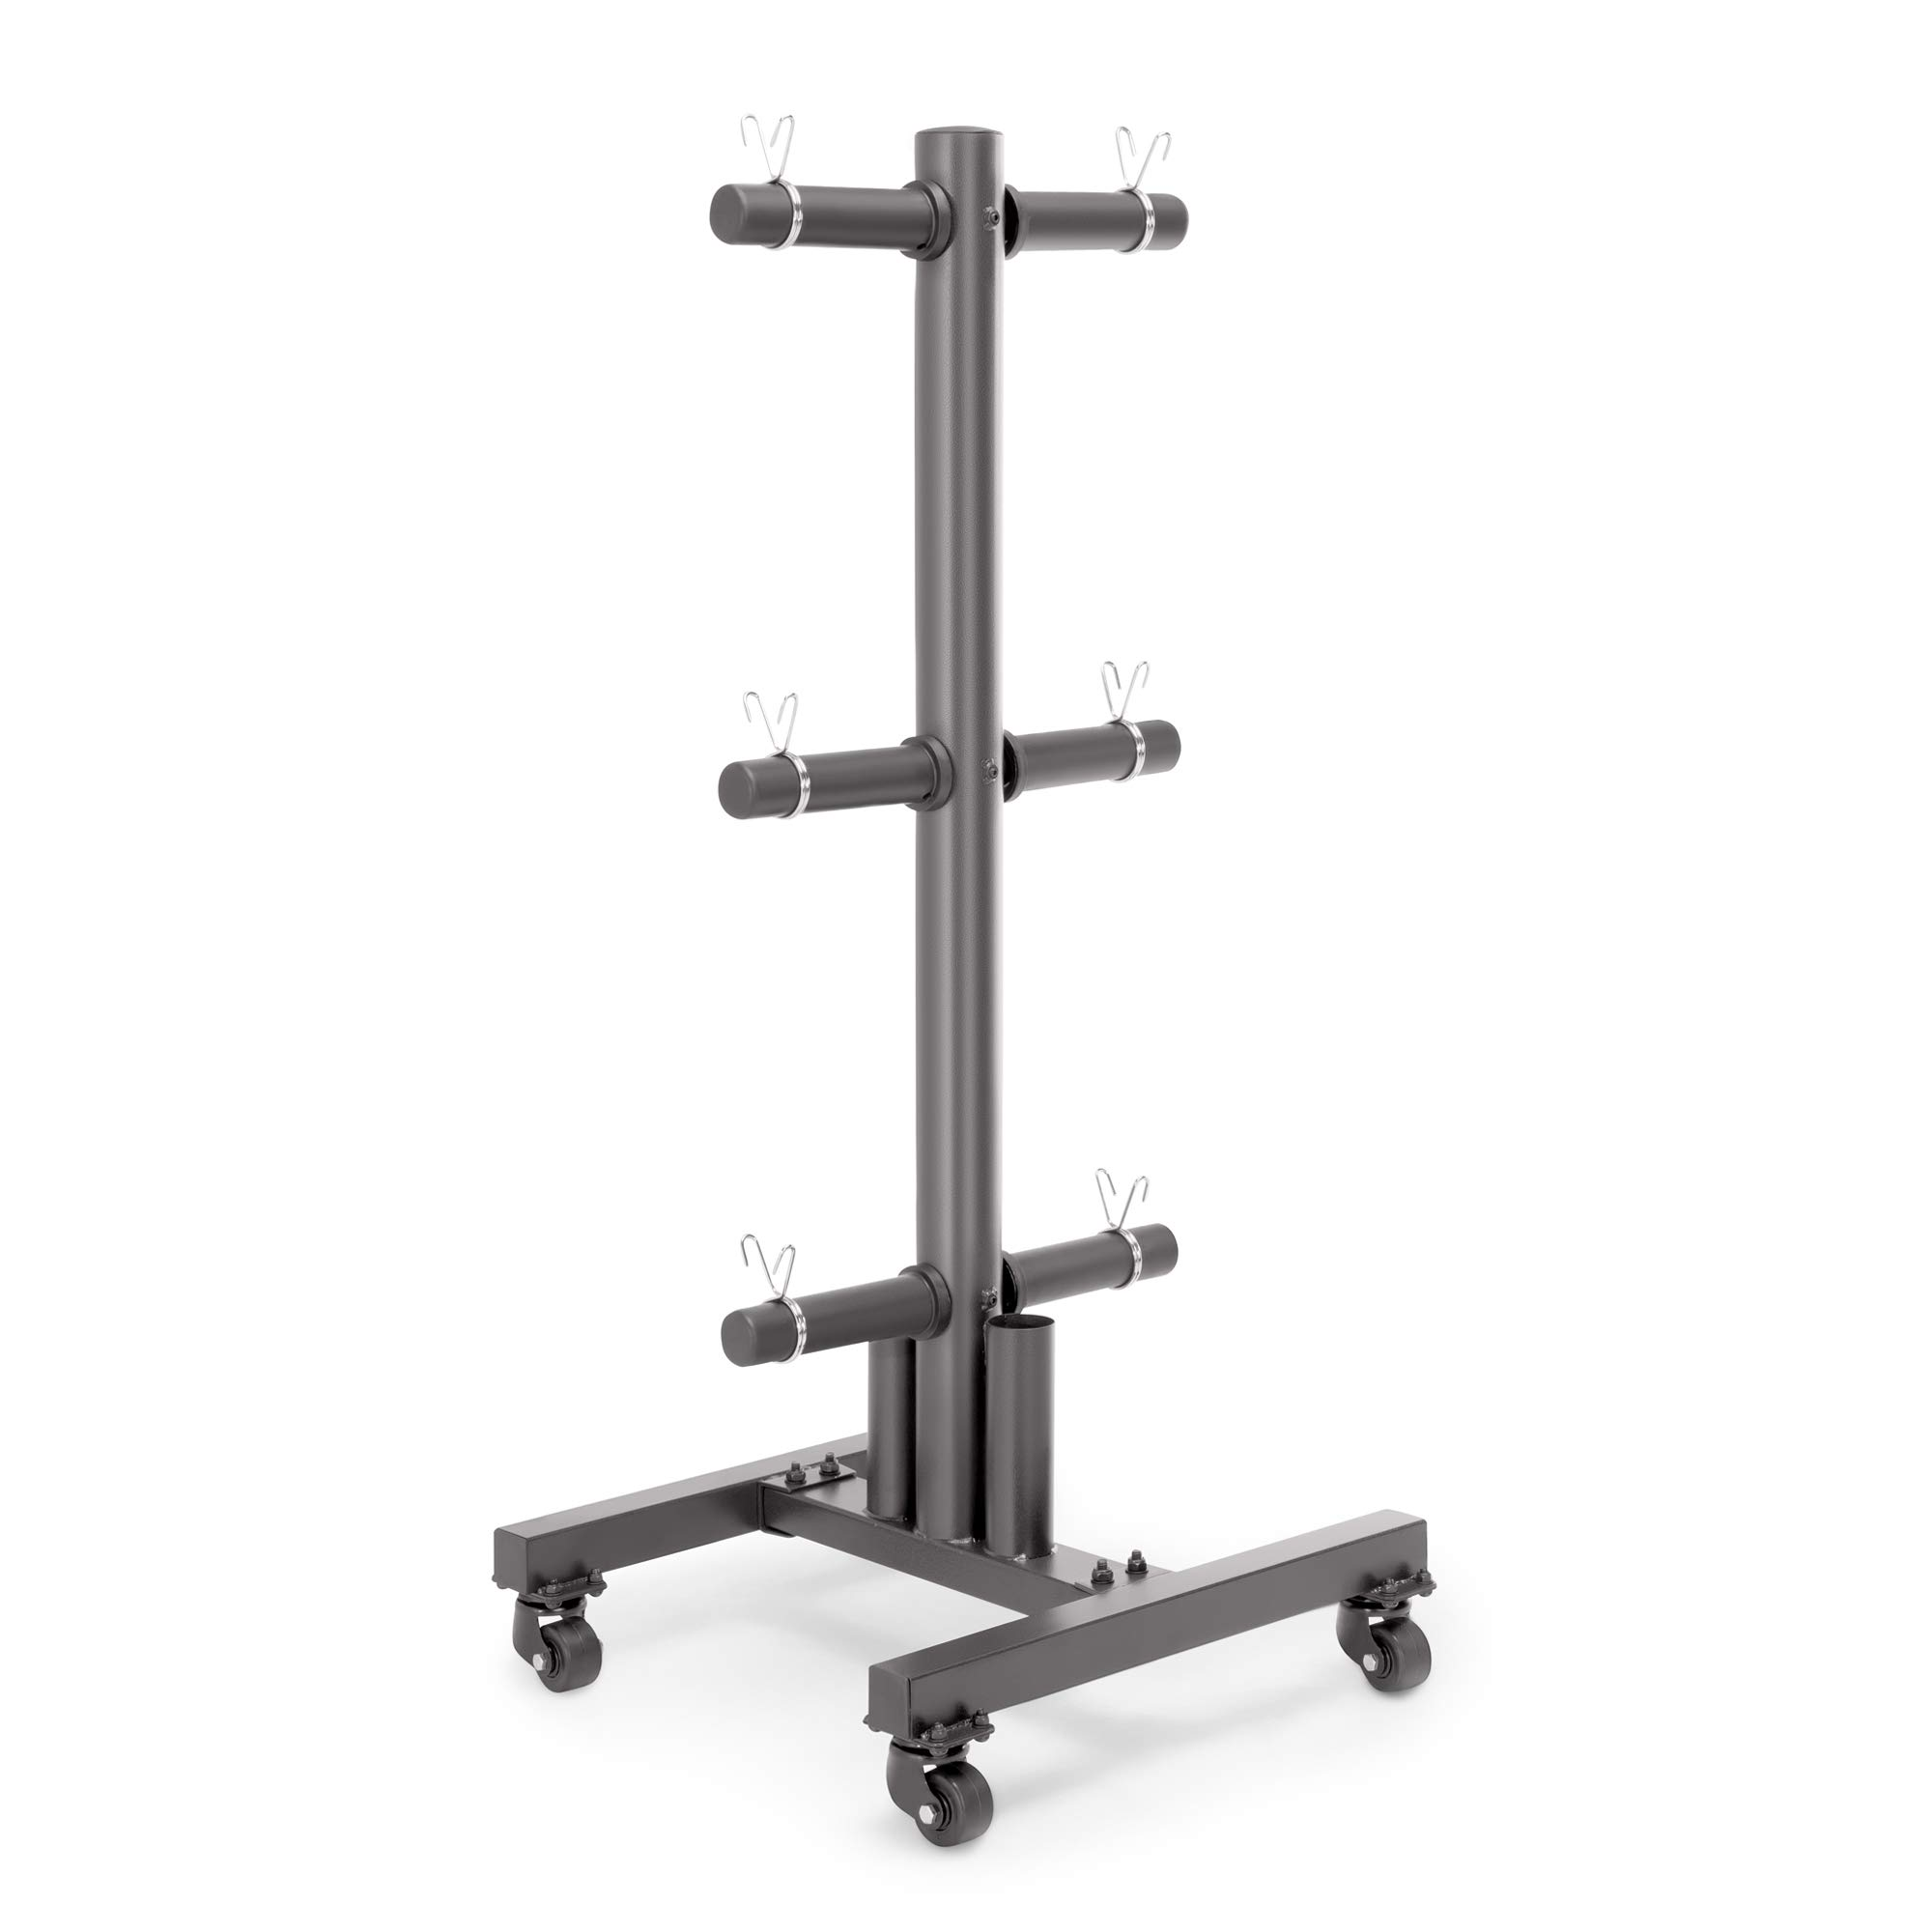 Marcy 6-Peg Olympic Plate Rack and Vertical bar Holder with Clips and Transport Wheels for 2-Inch Weight Plates PT-5856